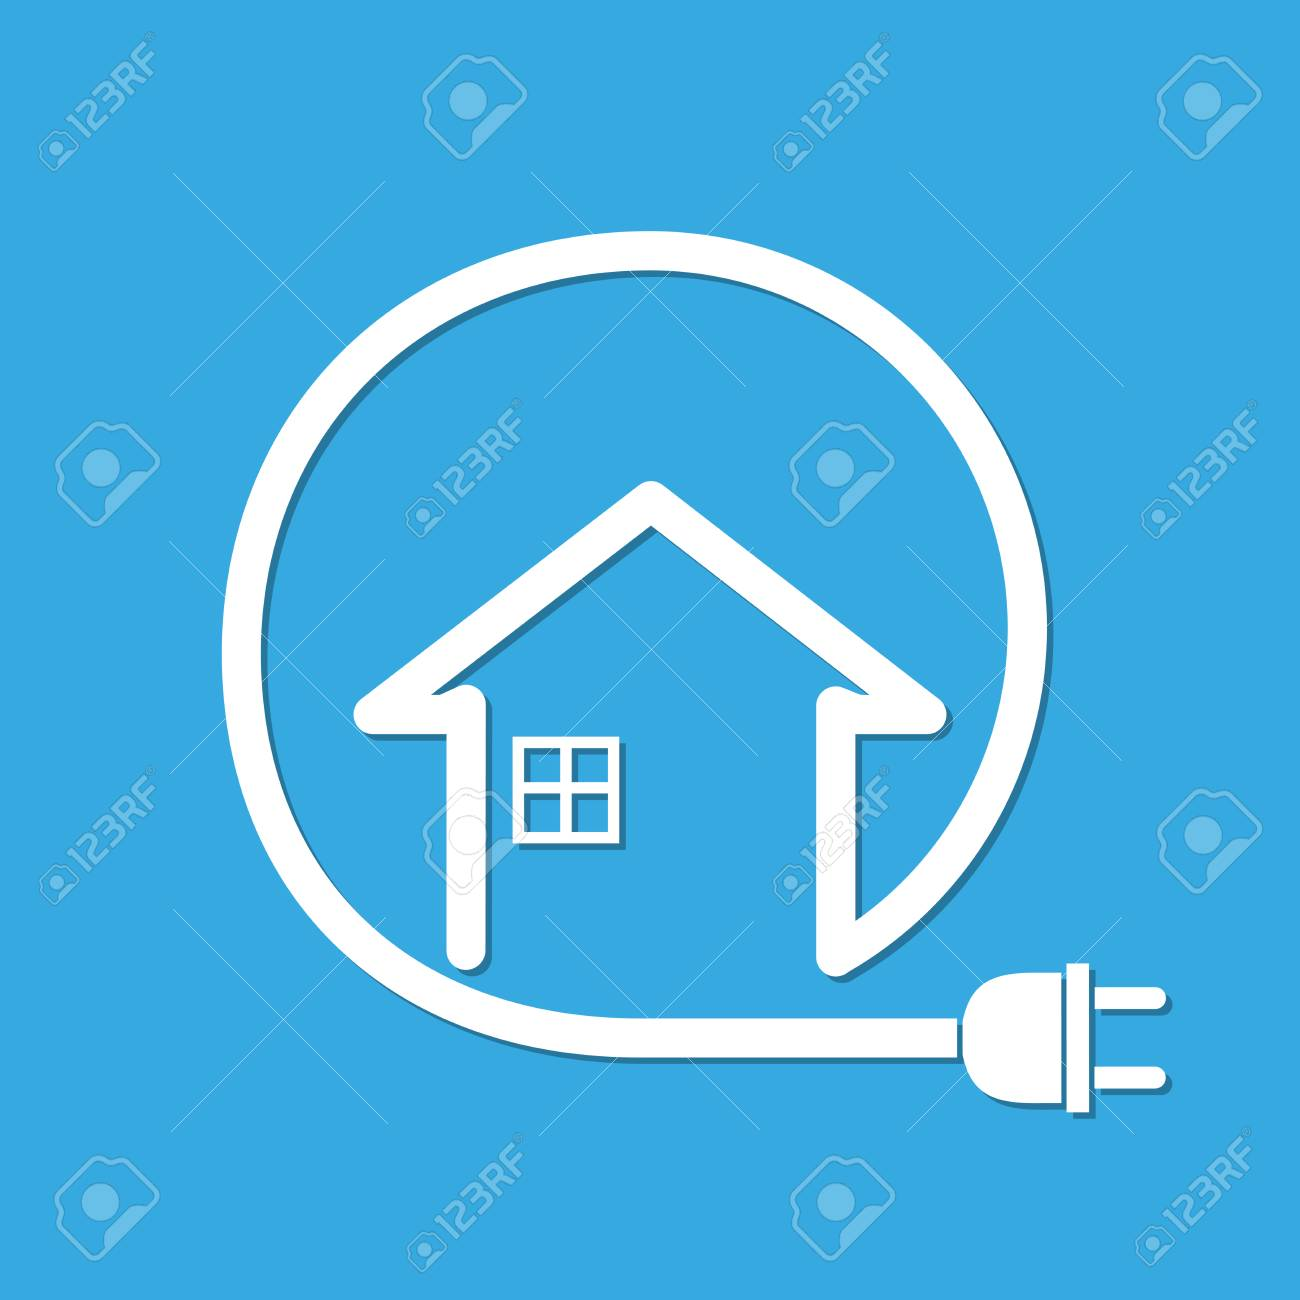 Silhouette Of House With Wire Plug - Vector Illustration. Simple ...